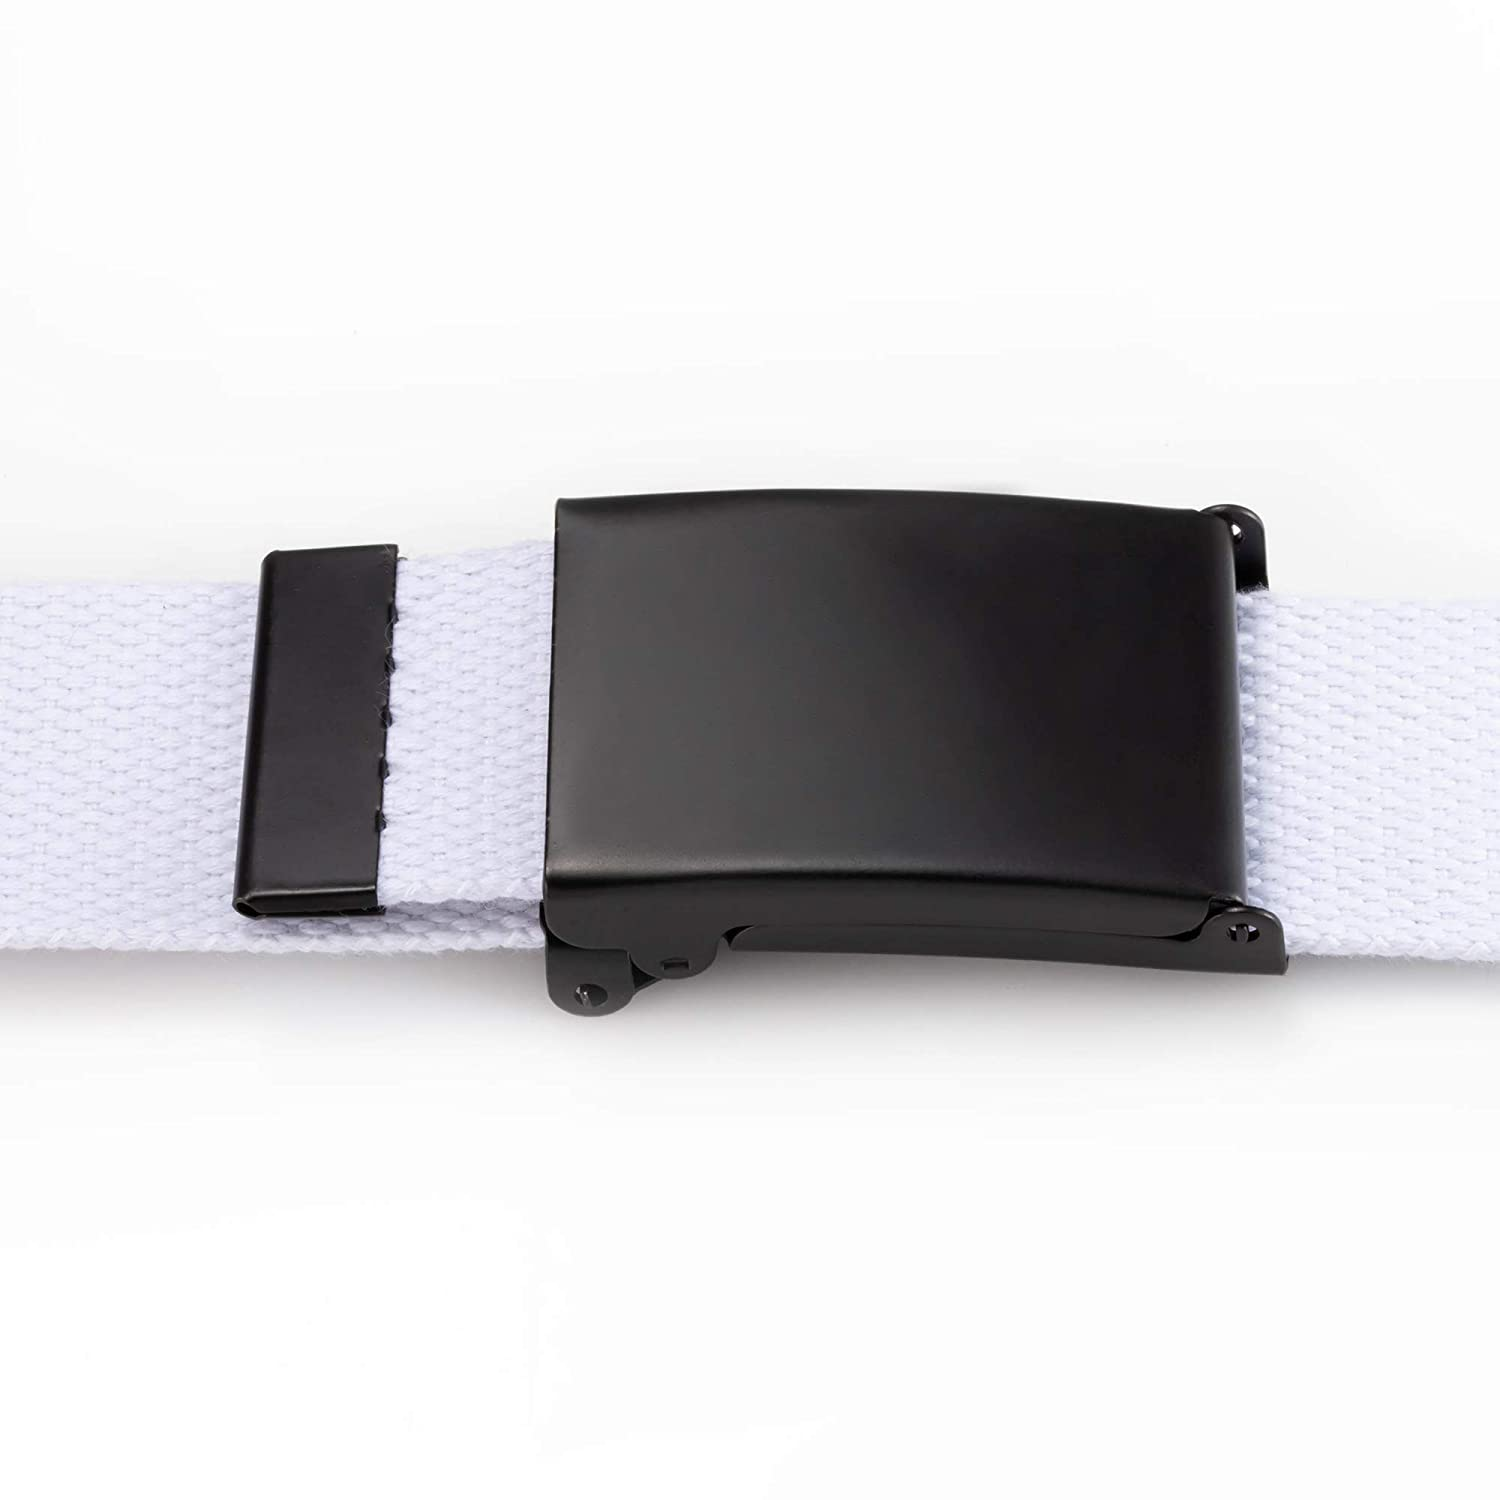 Cut To Fit Canvas Web Belt Size Up to 52 with Flip-Top Solid Black Military Buckle 16 Color and Combo Pack Options